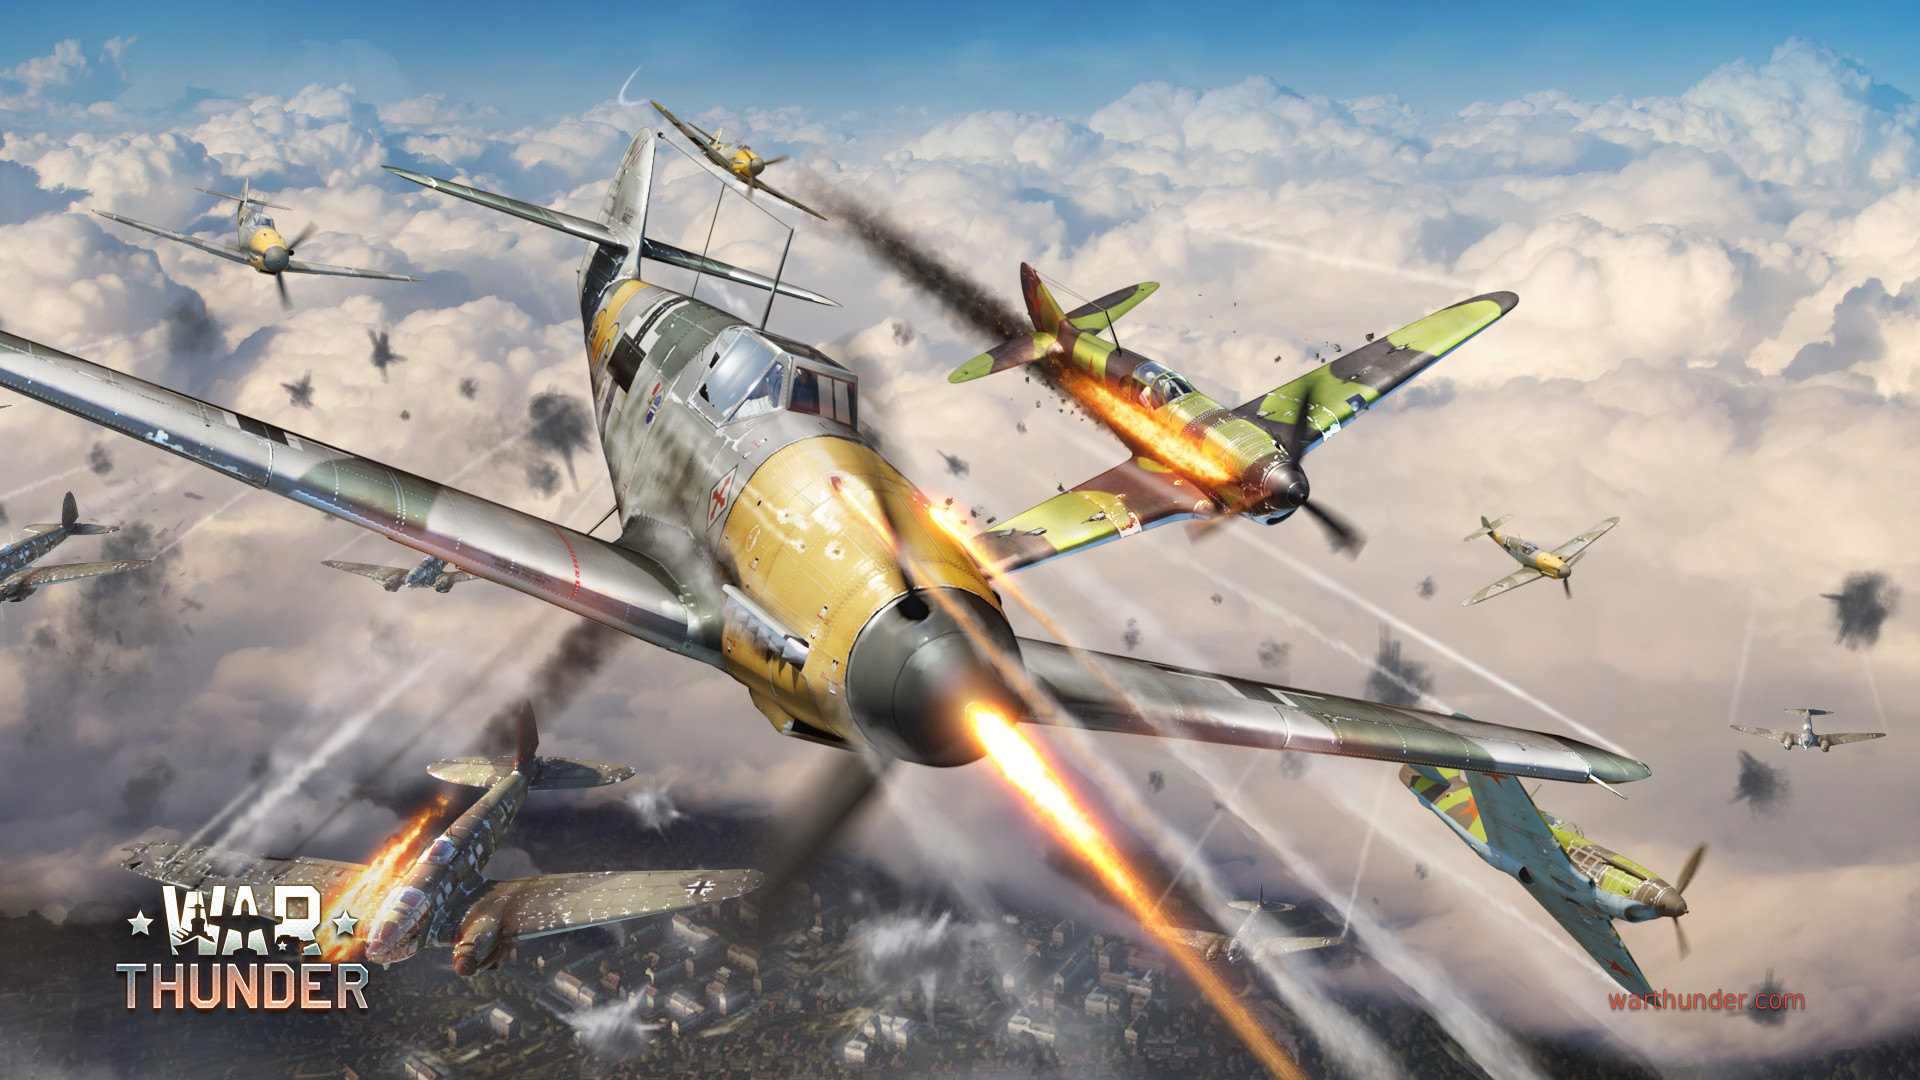 ww2 fighter plane games pc with Wallpapers on Big additionally P 51 Mustang 159546 moreover Dcs F15c further Sudden Strike 4 Brings Ww2 Real Time Strategy Battles To Pc Mac And Ps4 In March 2017 further Three Pokmon Latias Latios And Kyogre As Modern Aircrafts.